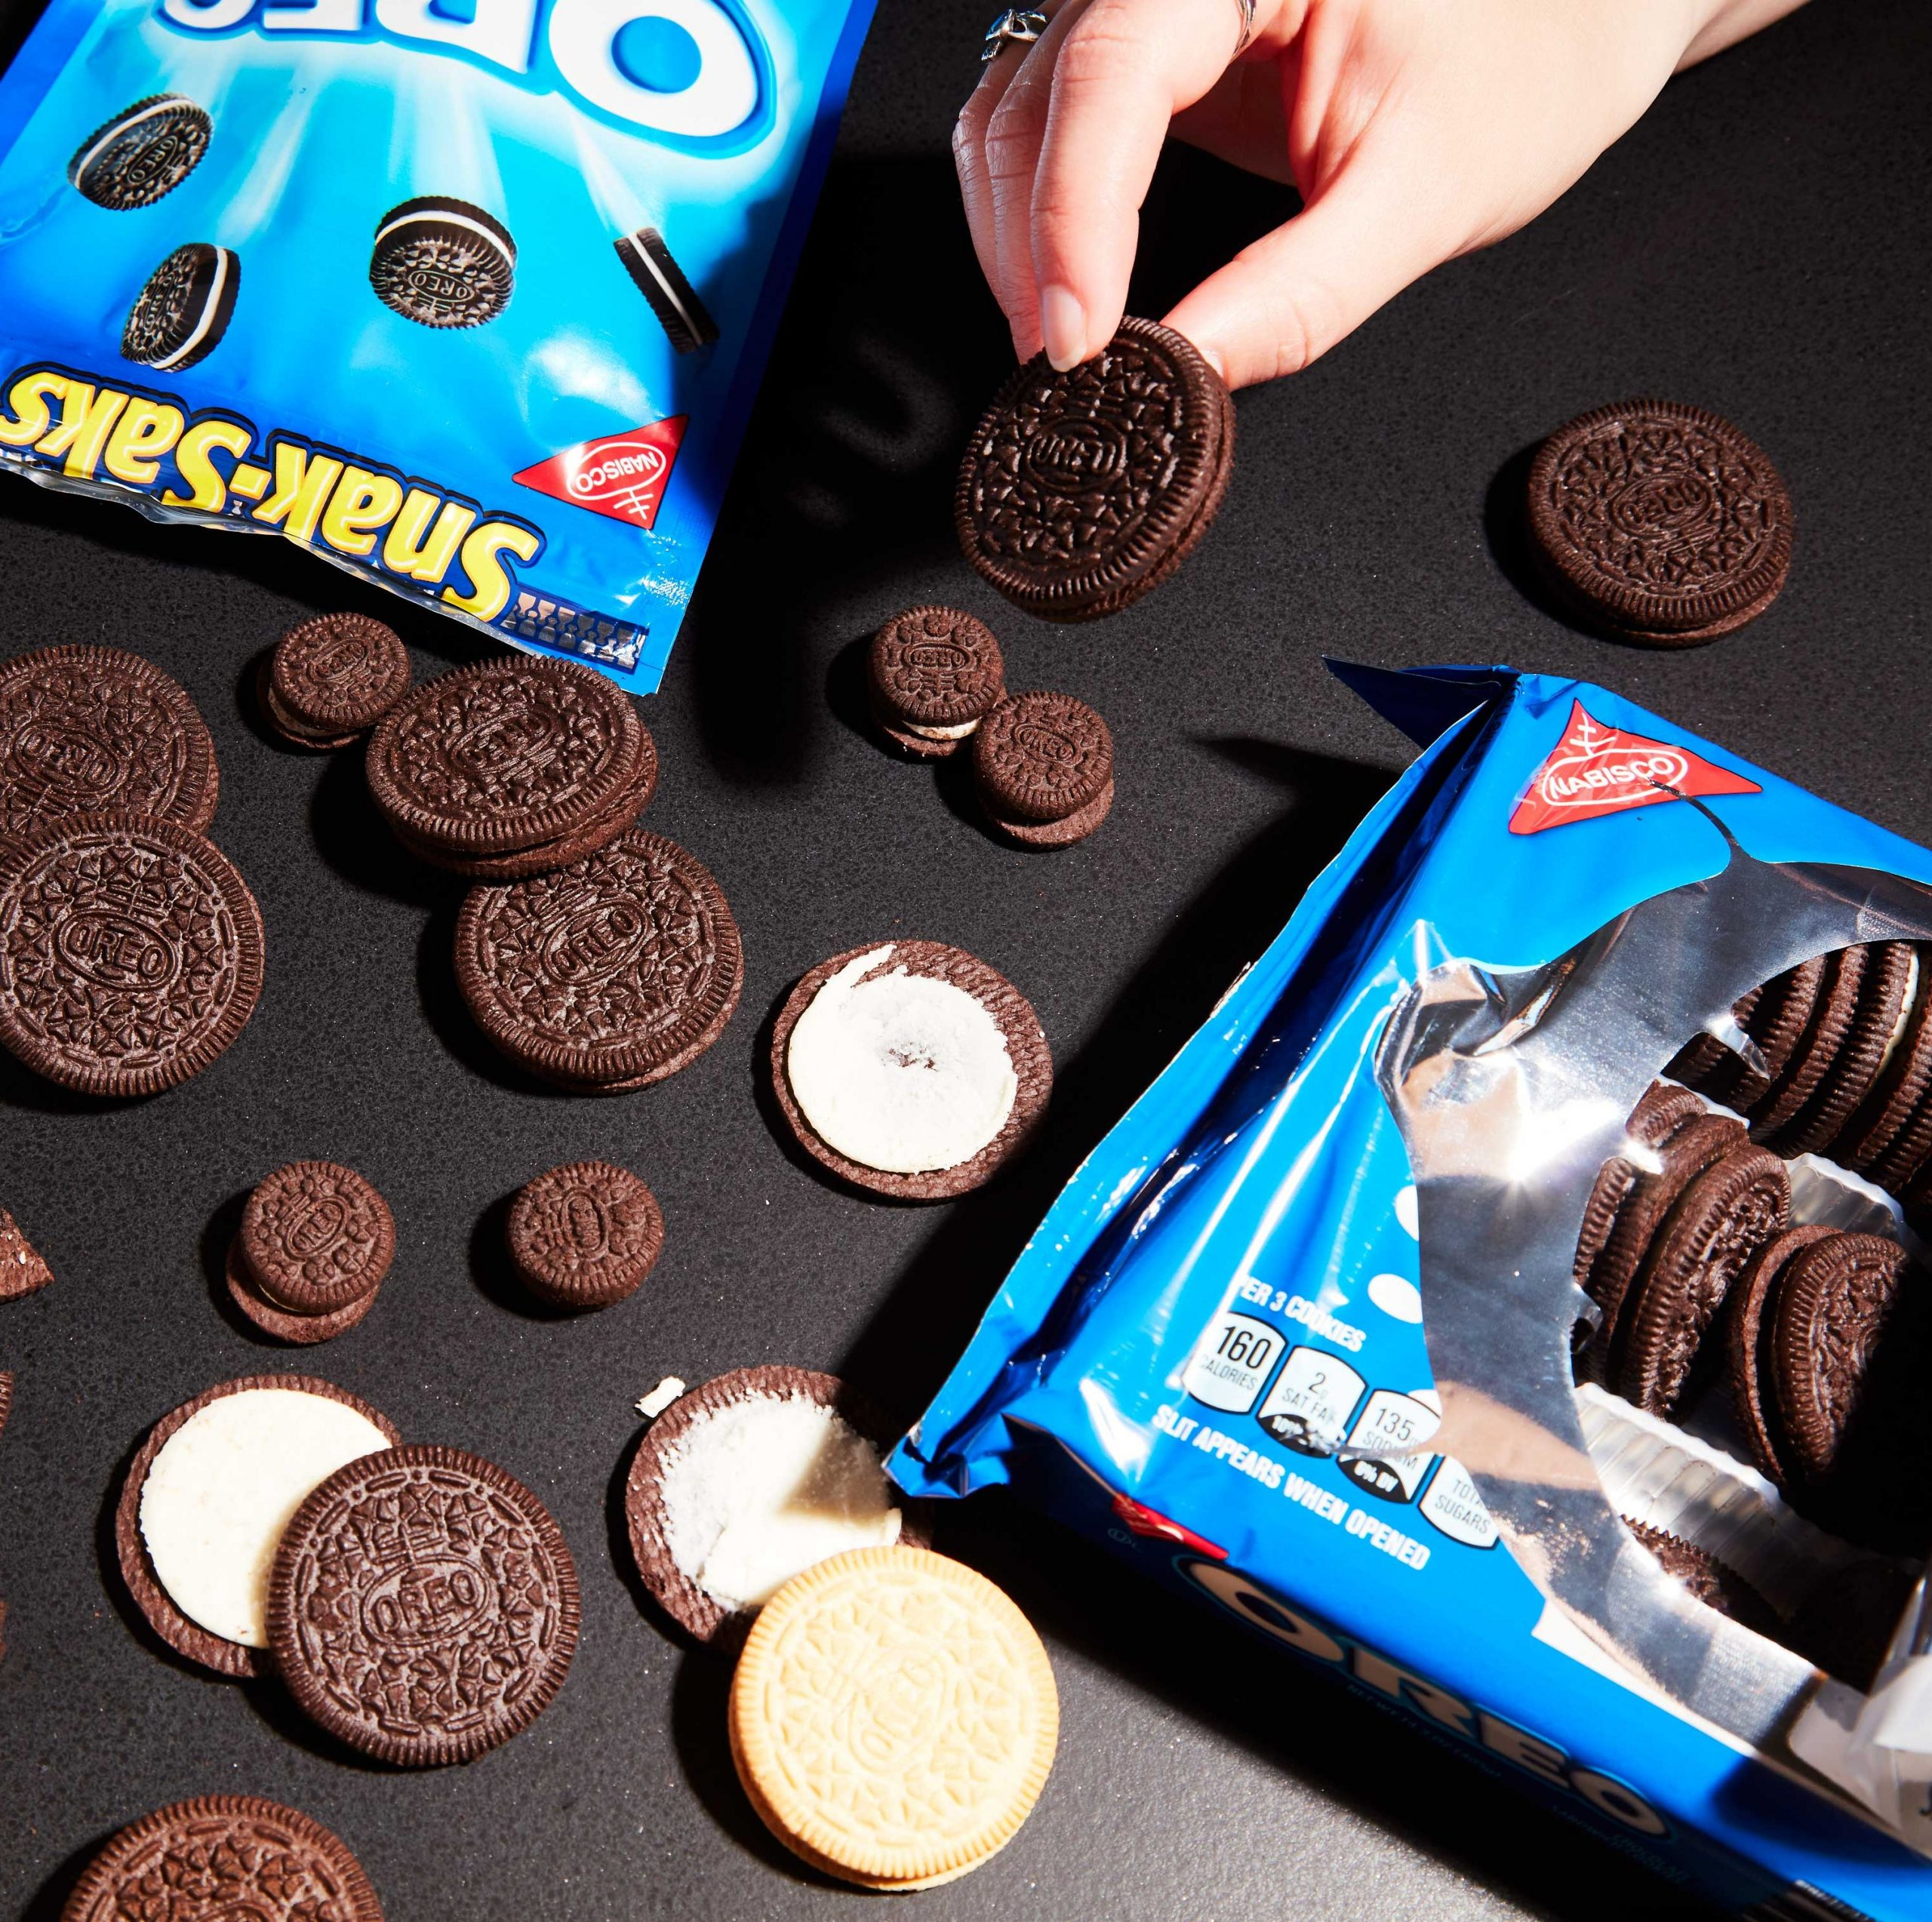 The Absolute Best Way to Eat An Oreo, According to Science   Popular Mechanics